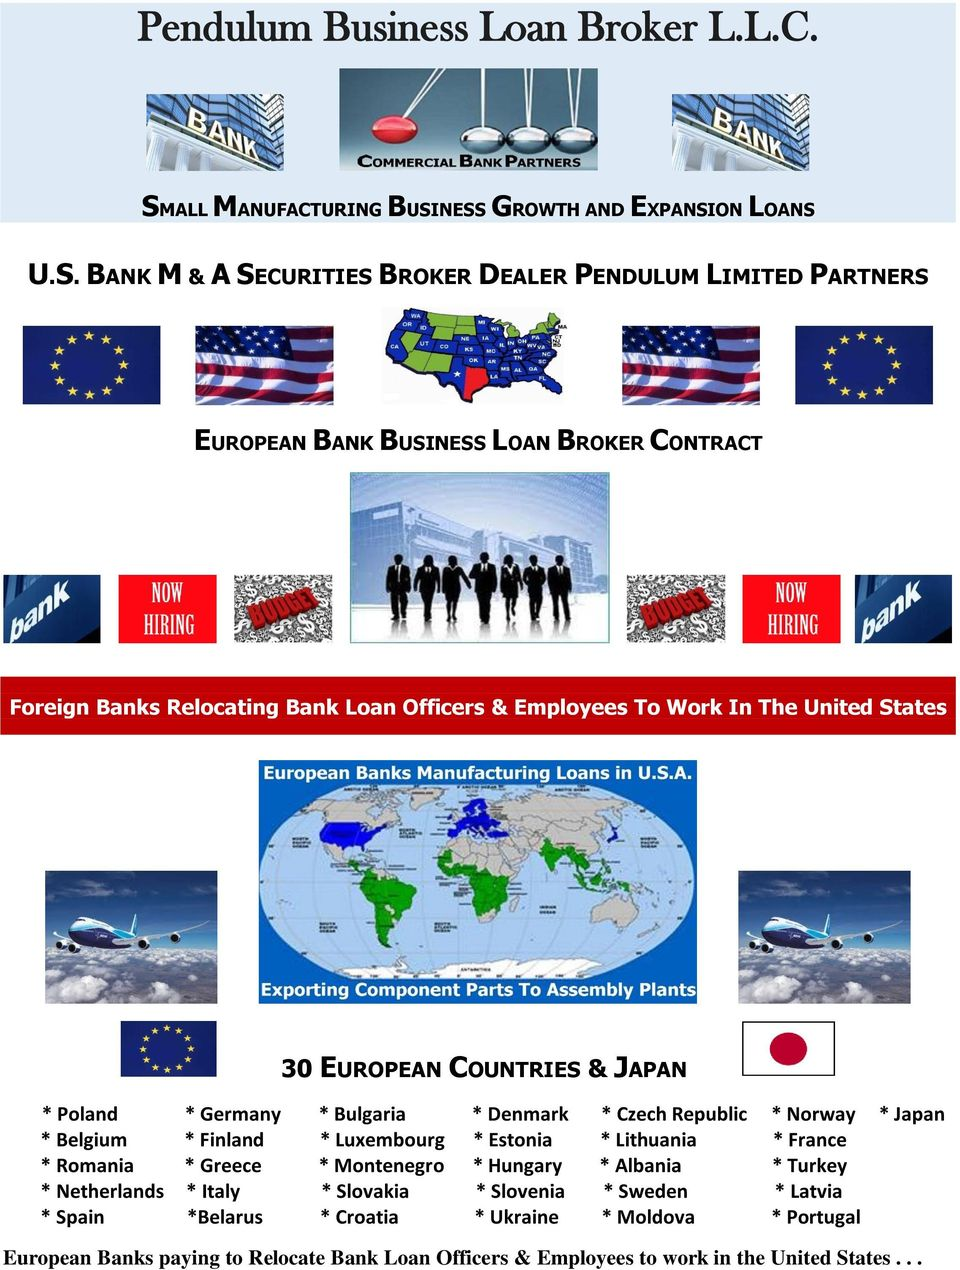 NESS GROWTH AND EXPANSION LOANS U.S. BANK M & A SECURITIES BROKER DEALER PENDULUM LIMITED PARTNERS EUROPEAN BANK BUSINESS LOAN BROKER CONTRACT Foreign Banks Relocating Bank Loan